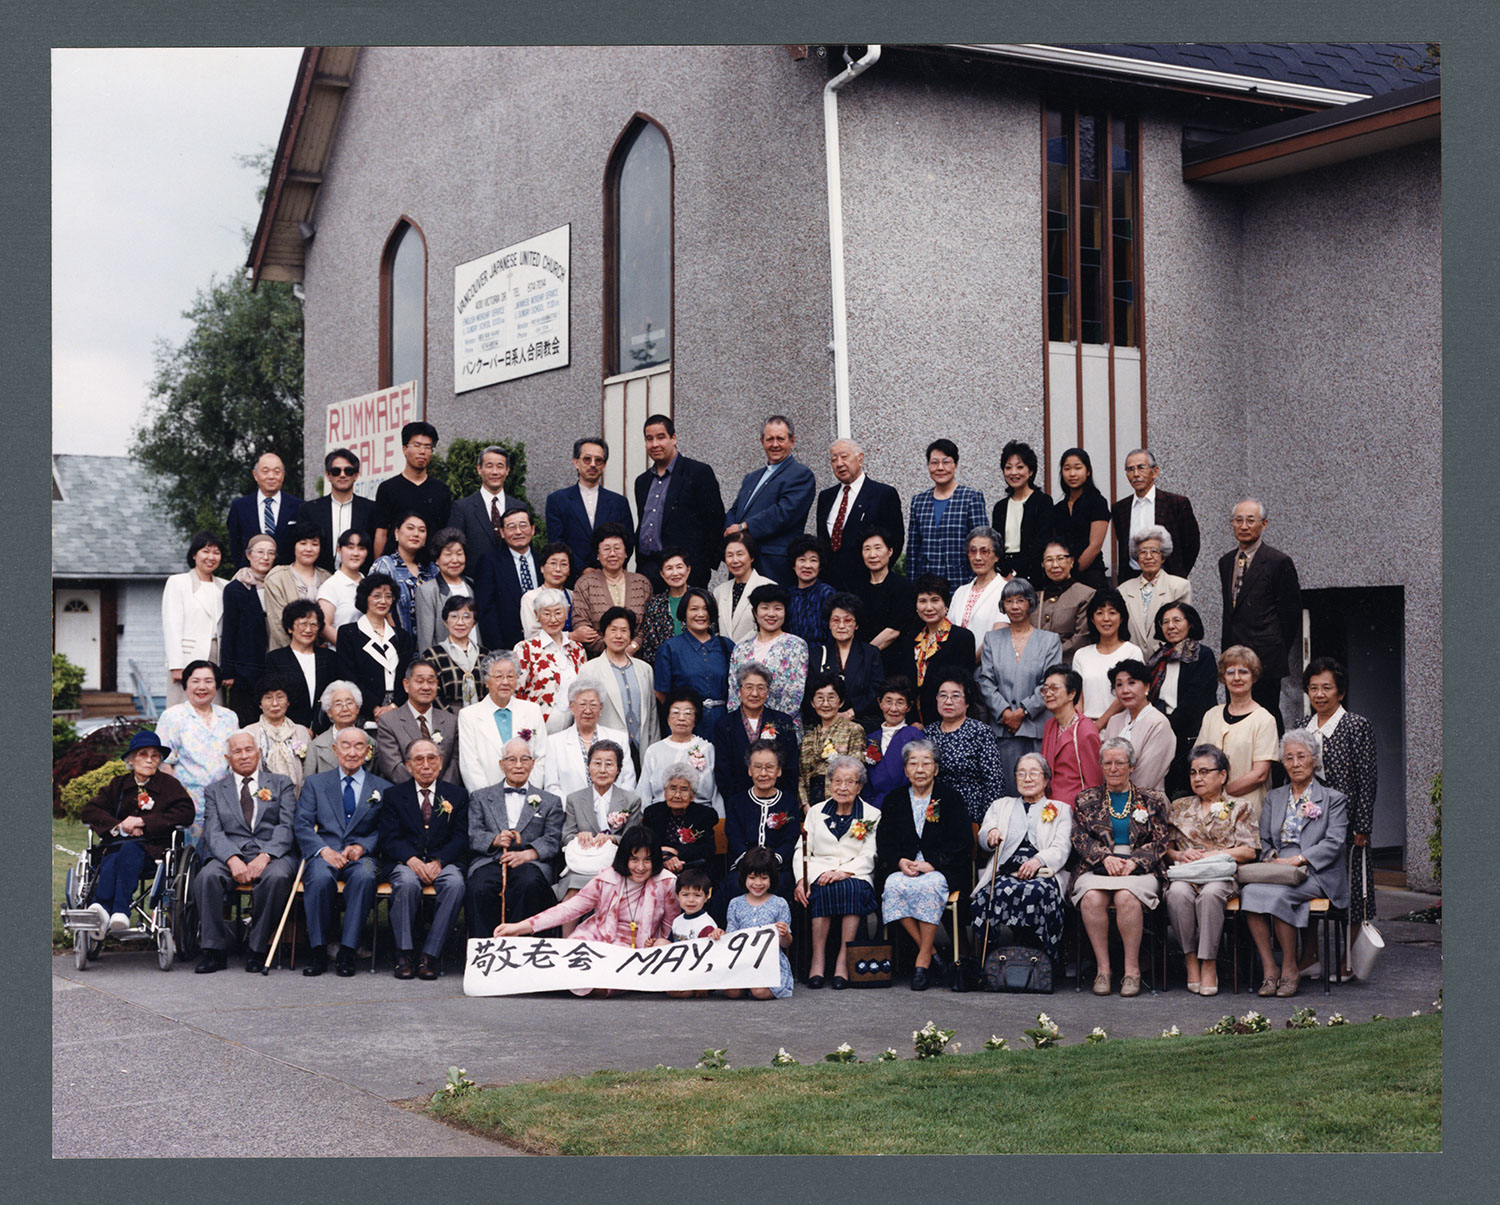 Group portrait of congregation, seniors' day